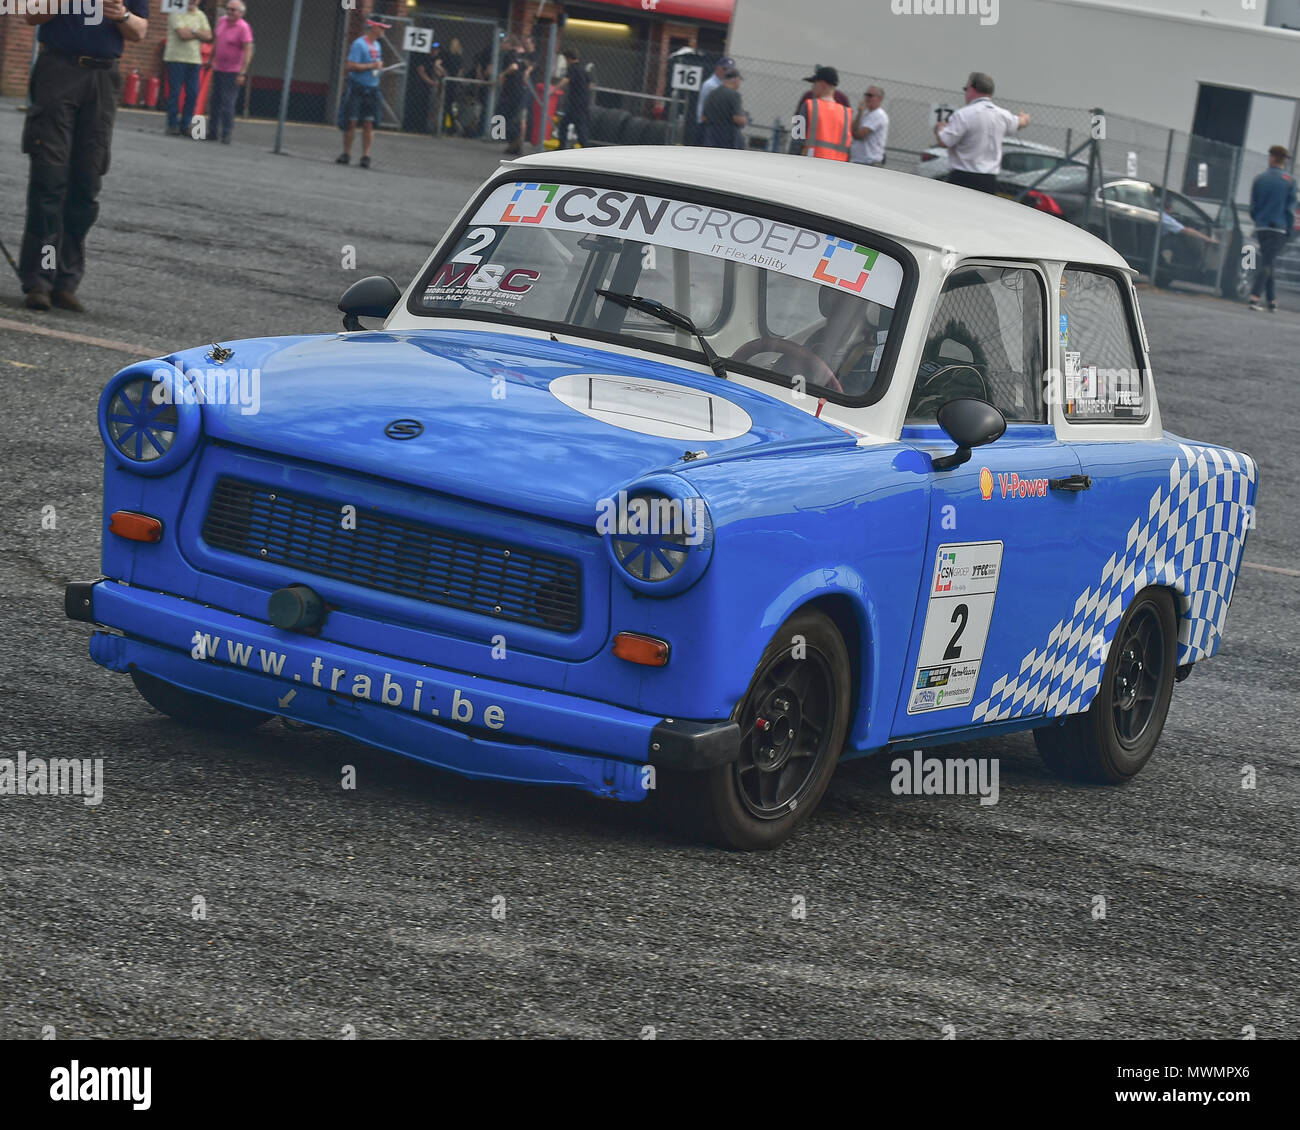 Bart Lemaire, Trabant 601 RS, CSN Groep, Youngtimer Touring Car Challenge, Masters Historic Festival, Brands Hatch, Sunday 27th May 2018, Brands Hatch - Stock Image